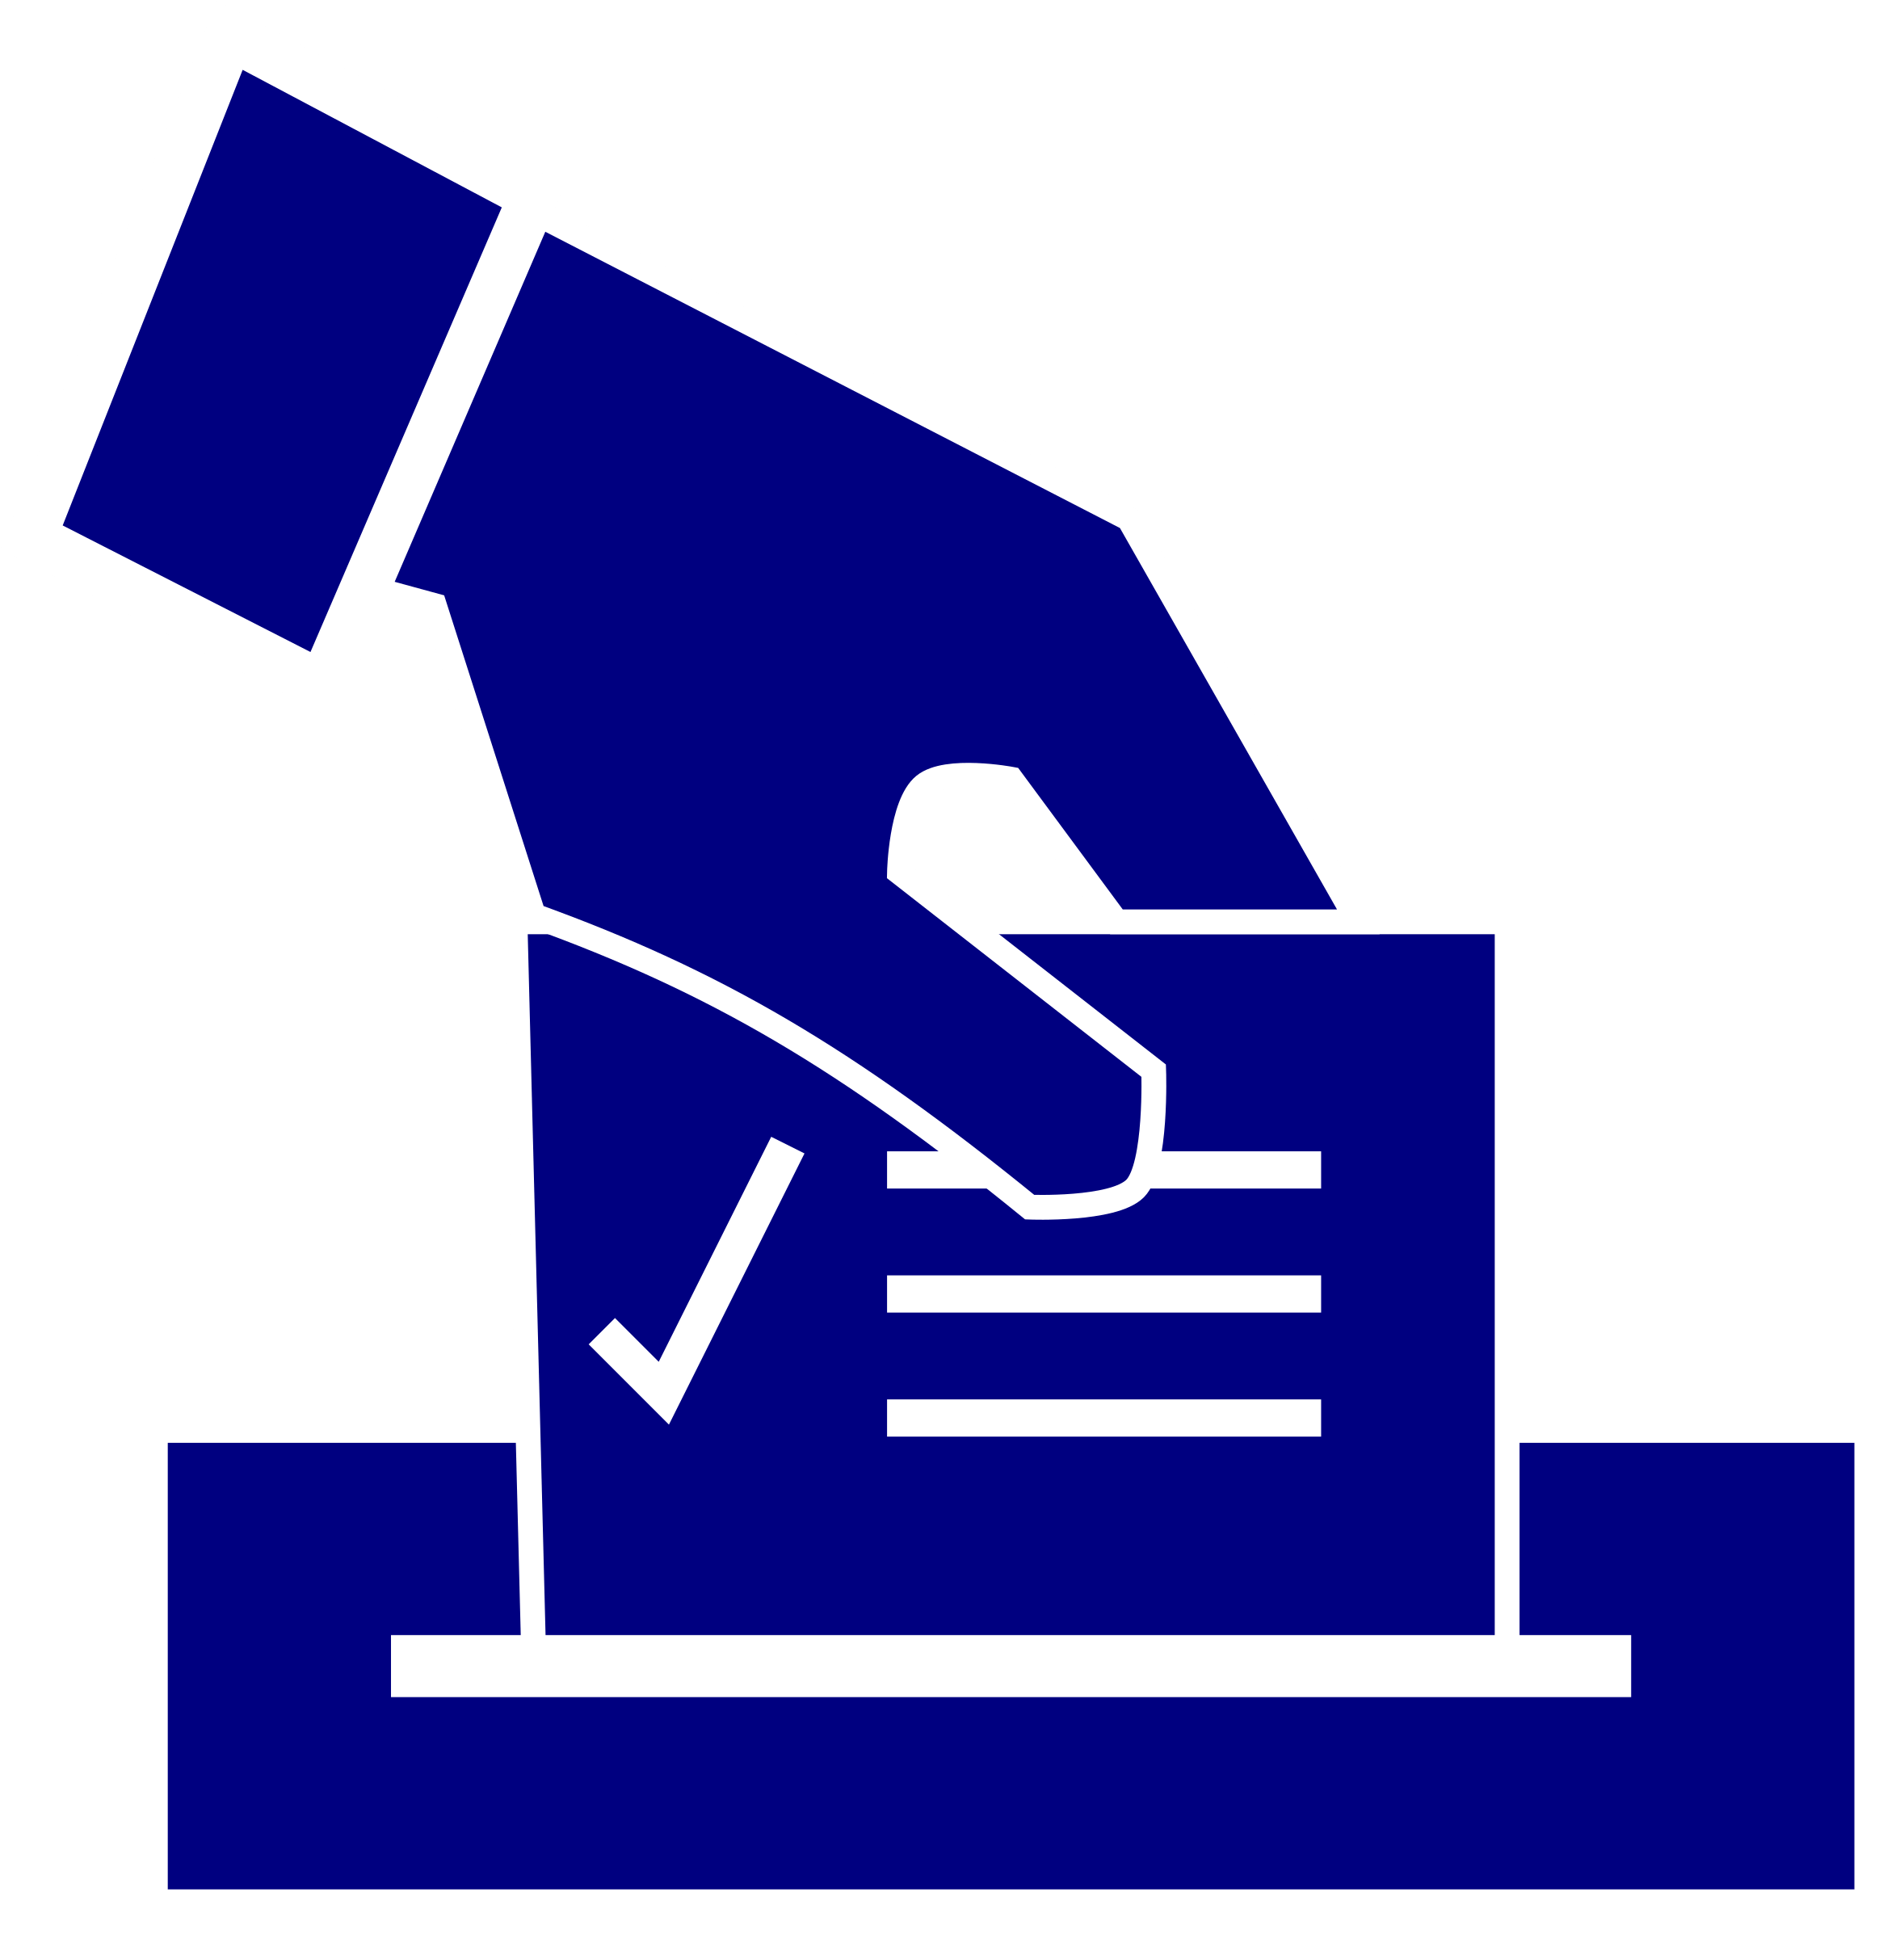 Vote clipart icon blue. Ballot transparent png stickpng